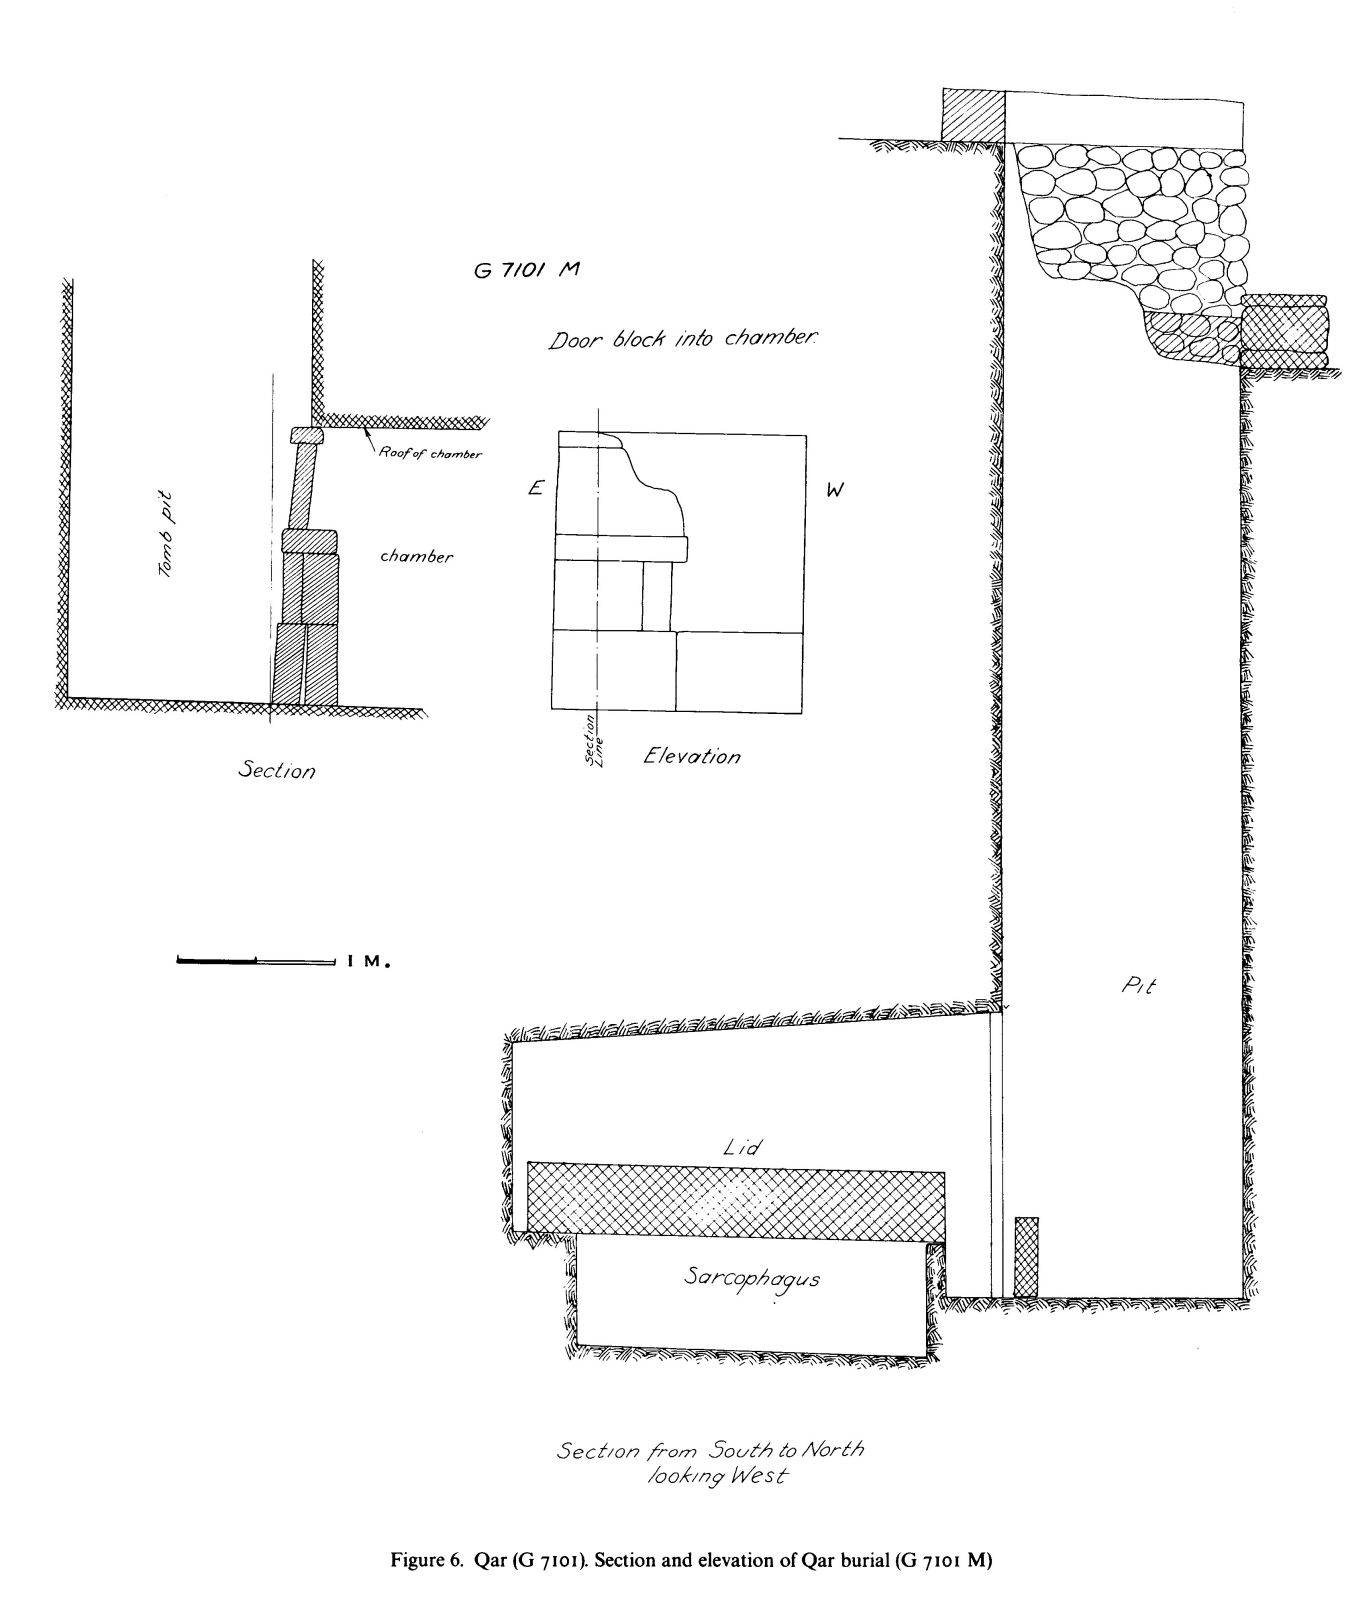 Maps and plans: G 7101, Shaft M